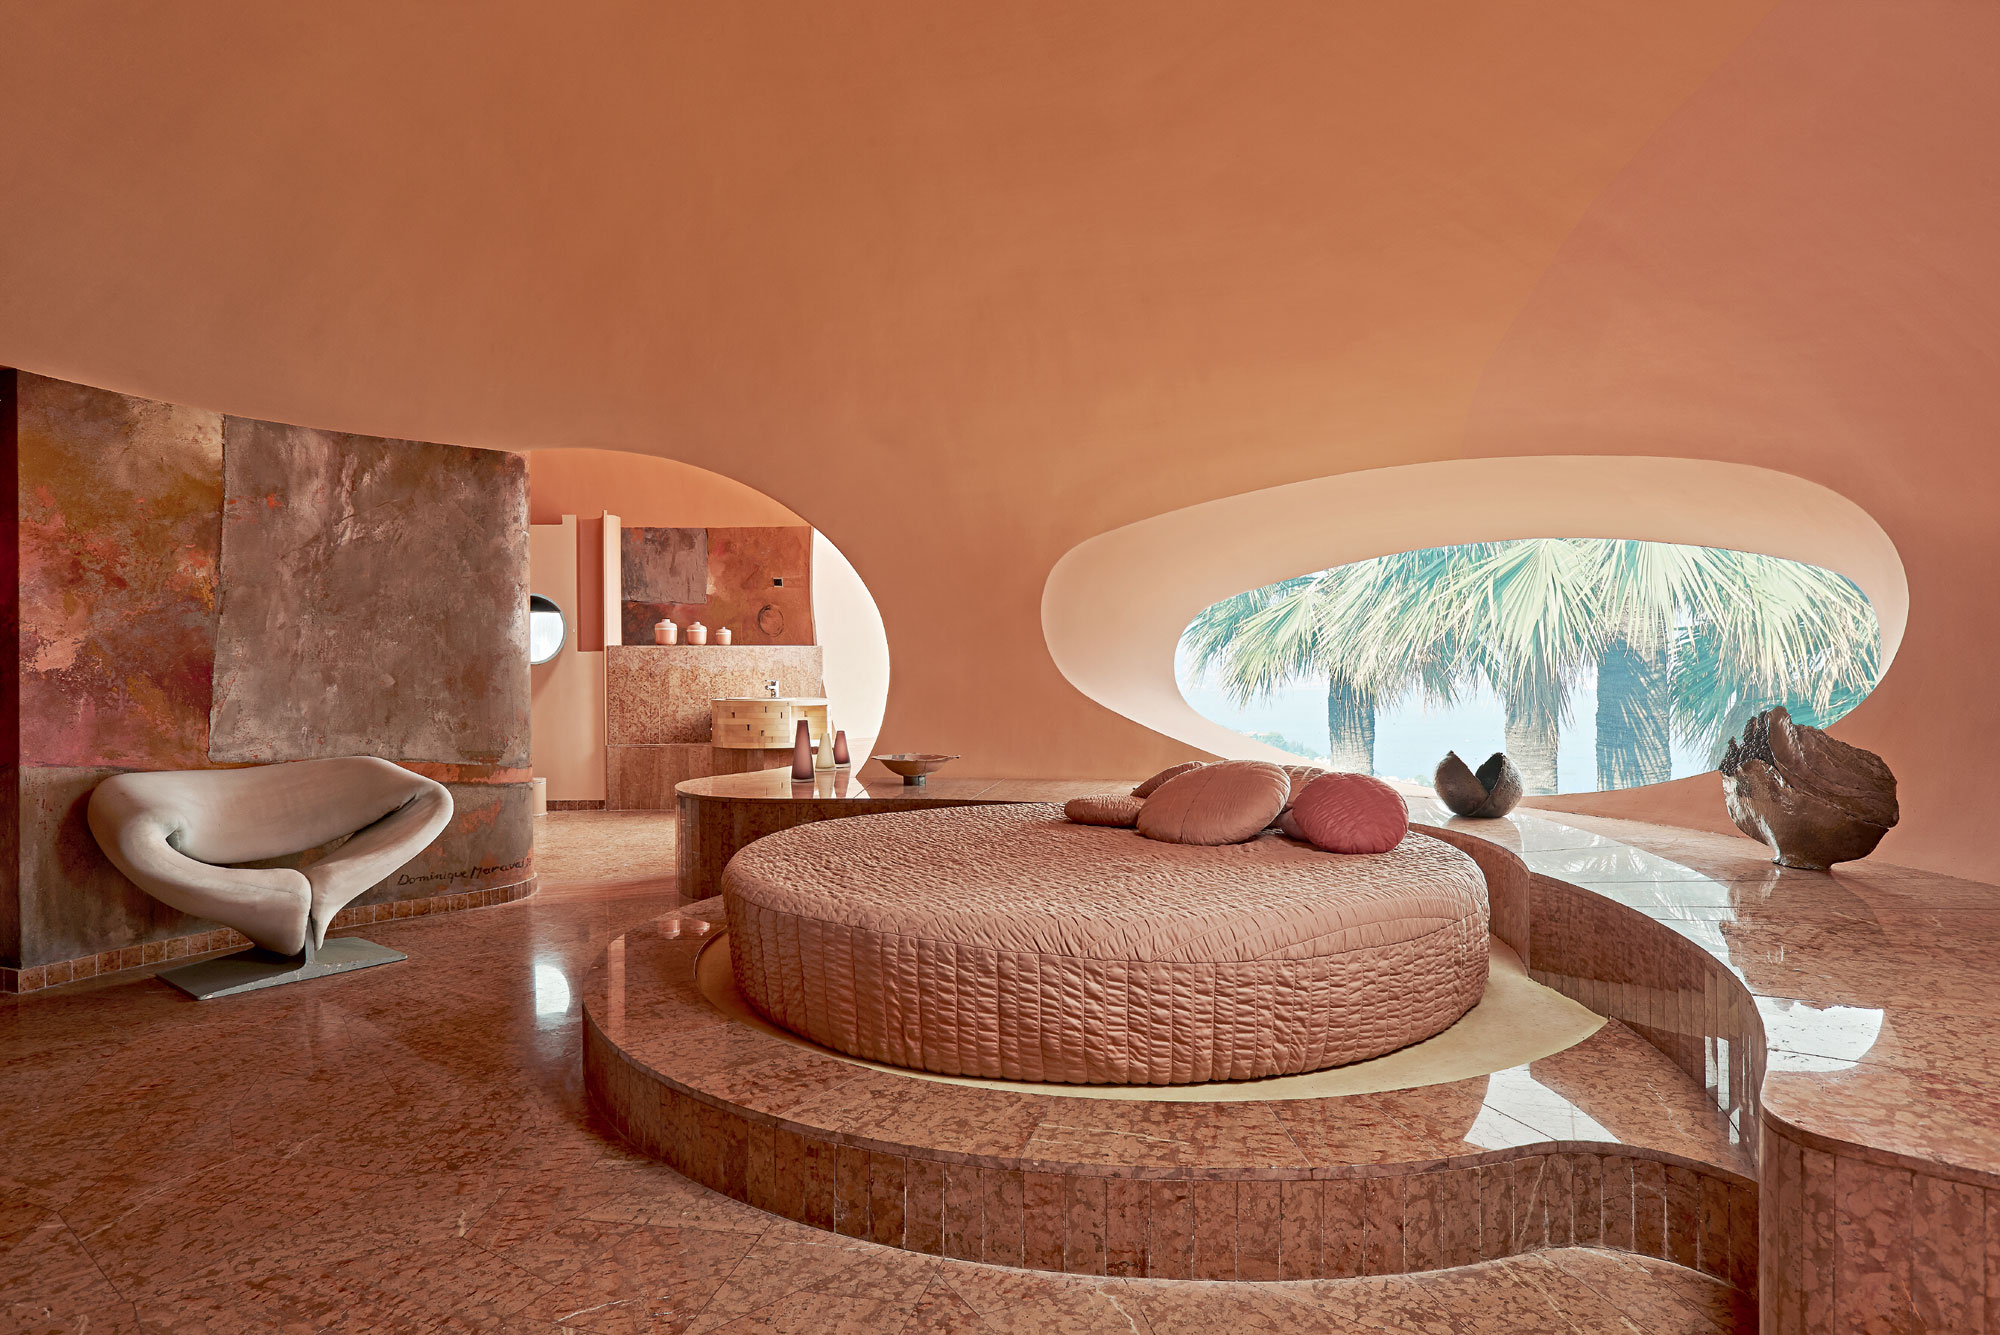 The interiors of Palais Bulles are adorned with custom-made furnishings and accessories—designed by Antti Lovag or Pierre Cardin—that echo the curved form of the rooms.